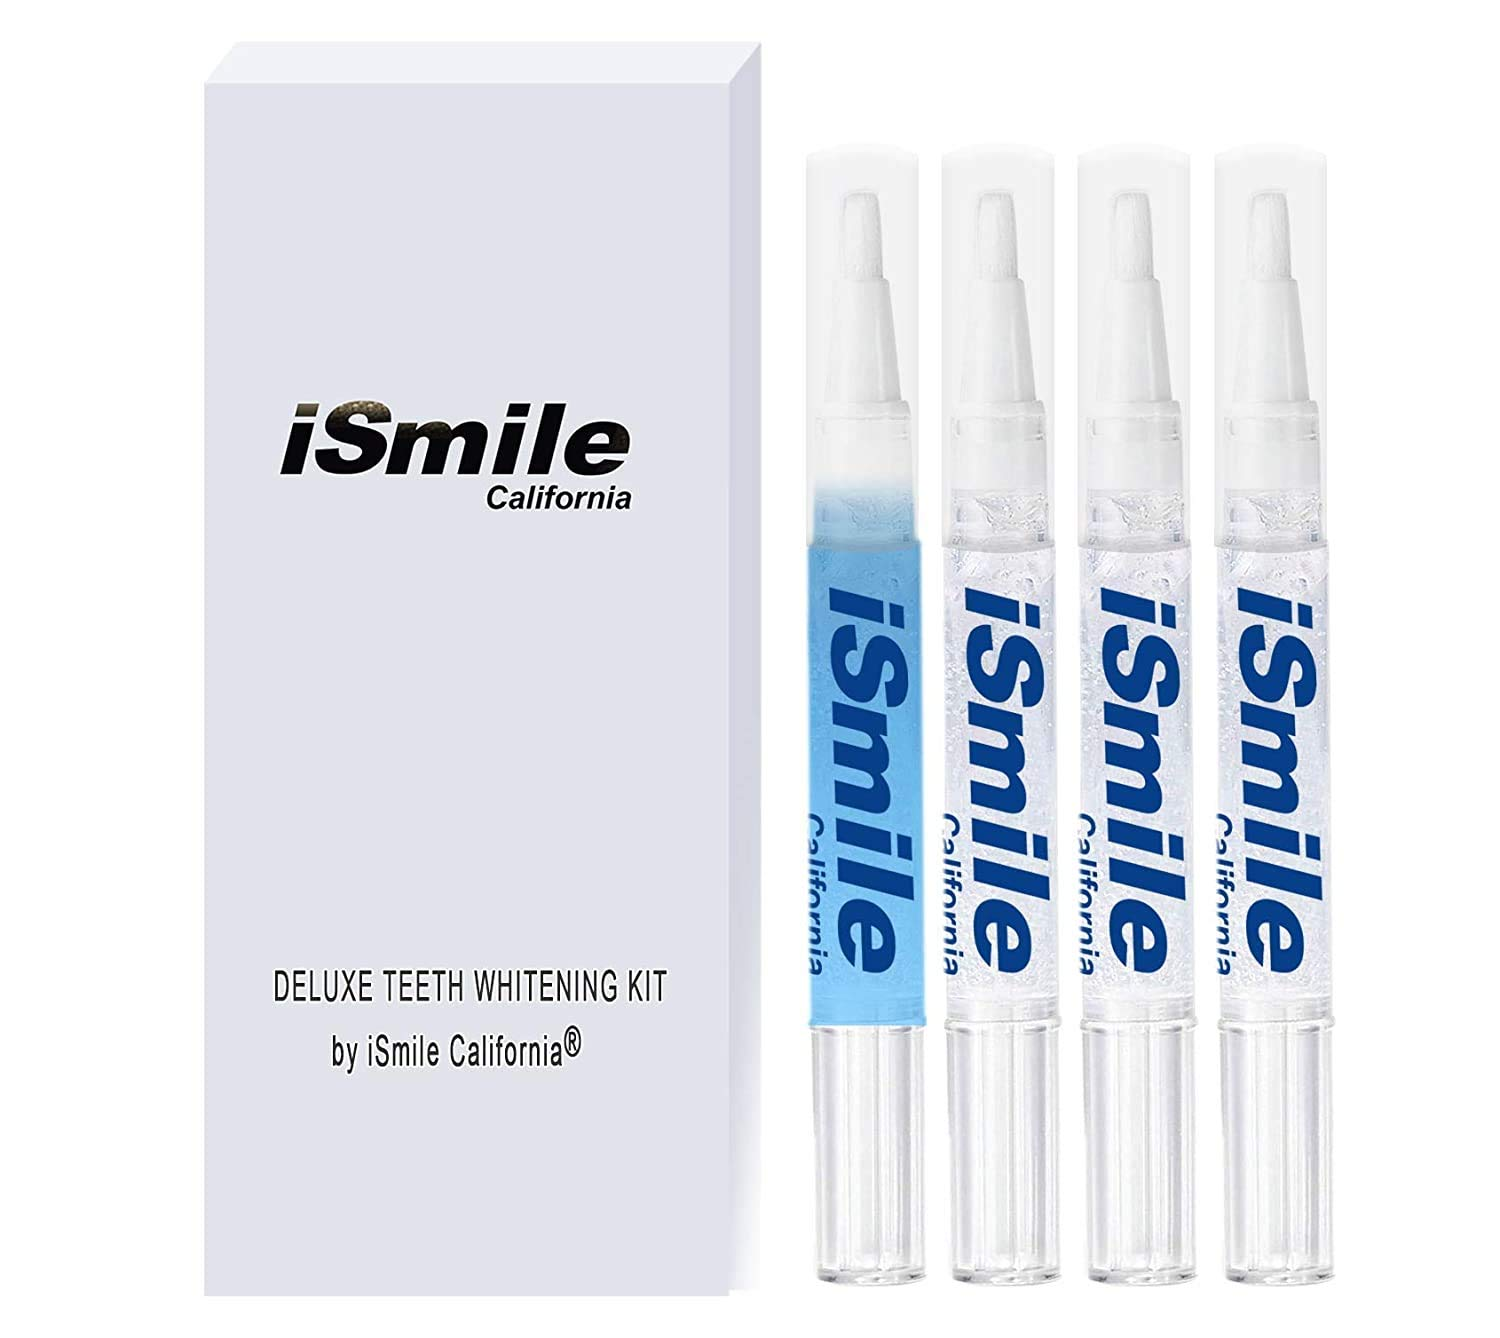 iSmile Gel Refill Kit - (4 Pack) Teeth Whitening Pen - 35% Carbamide Peroxide (x3) and Teeth Desensitizing Pens (x1) - for Sensitive Teeth - Tooth Whitener - by iSmile California